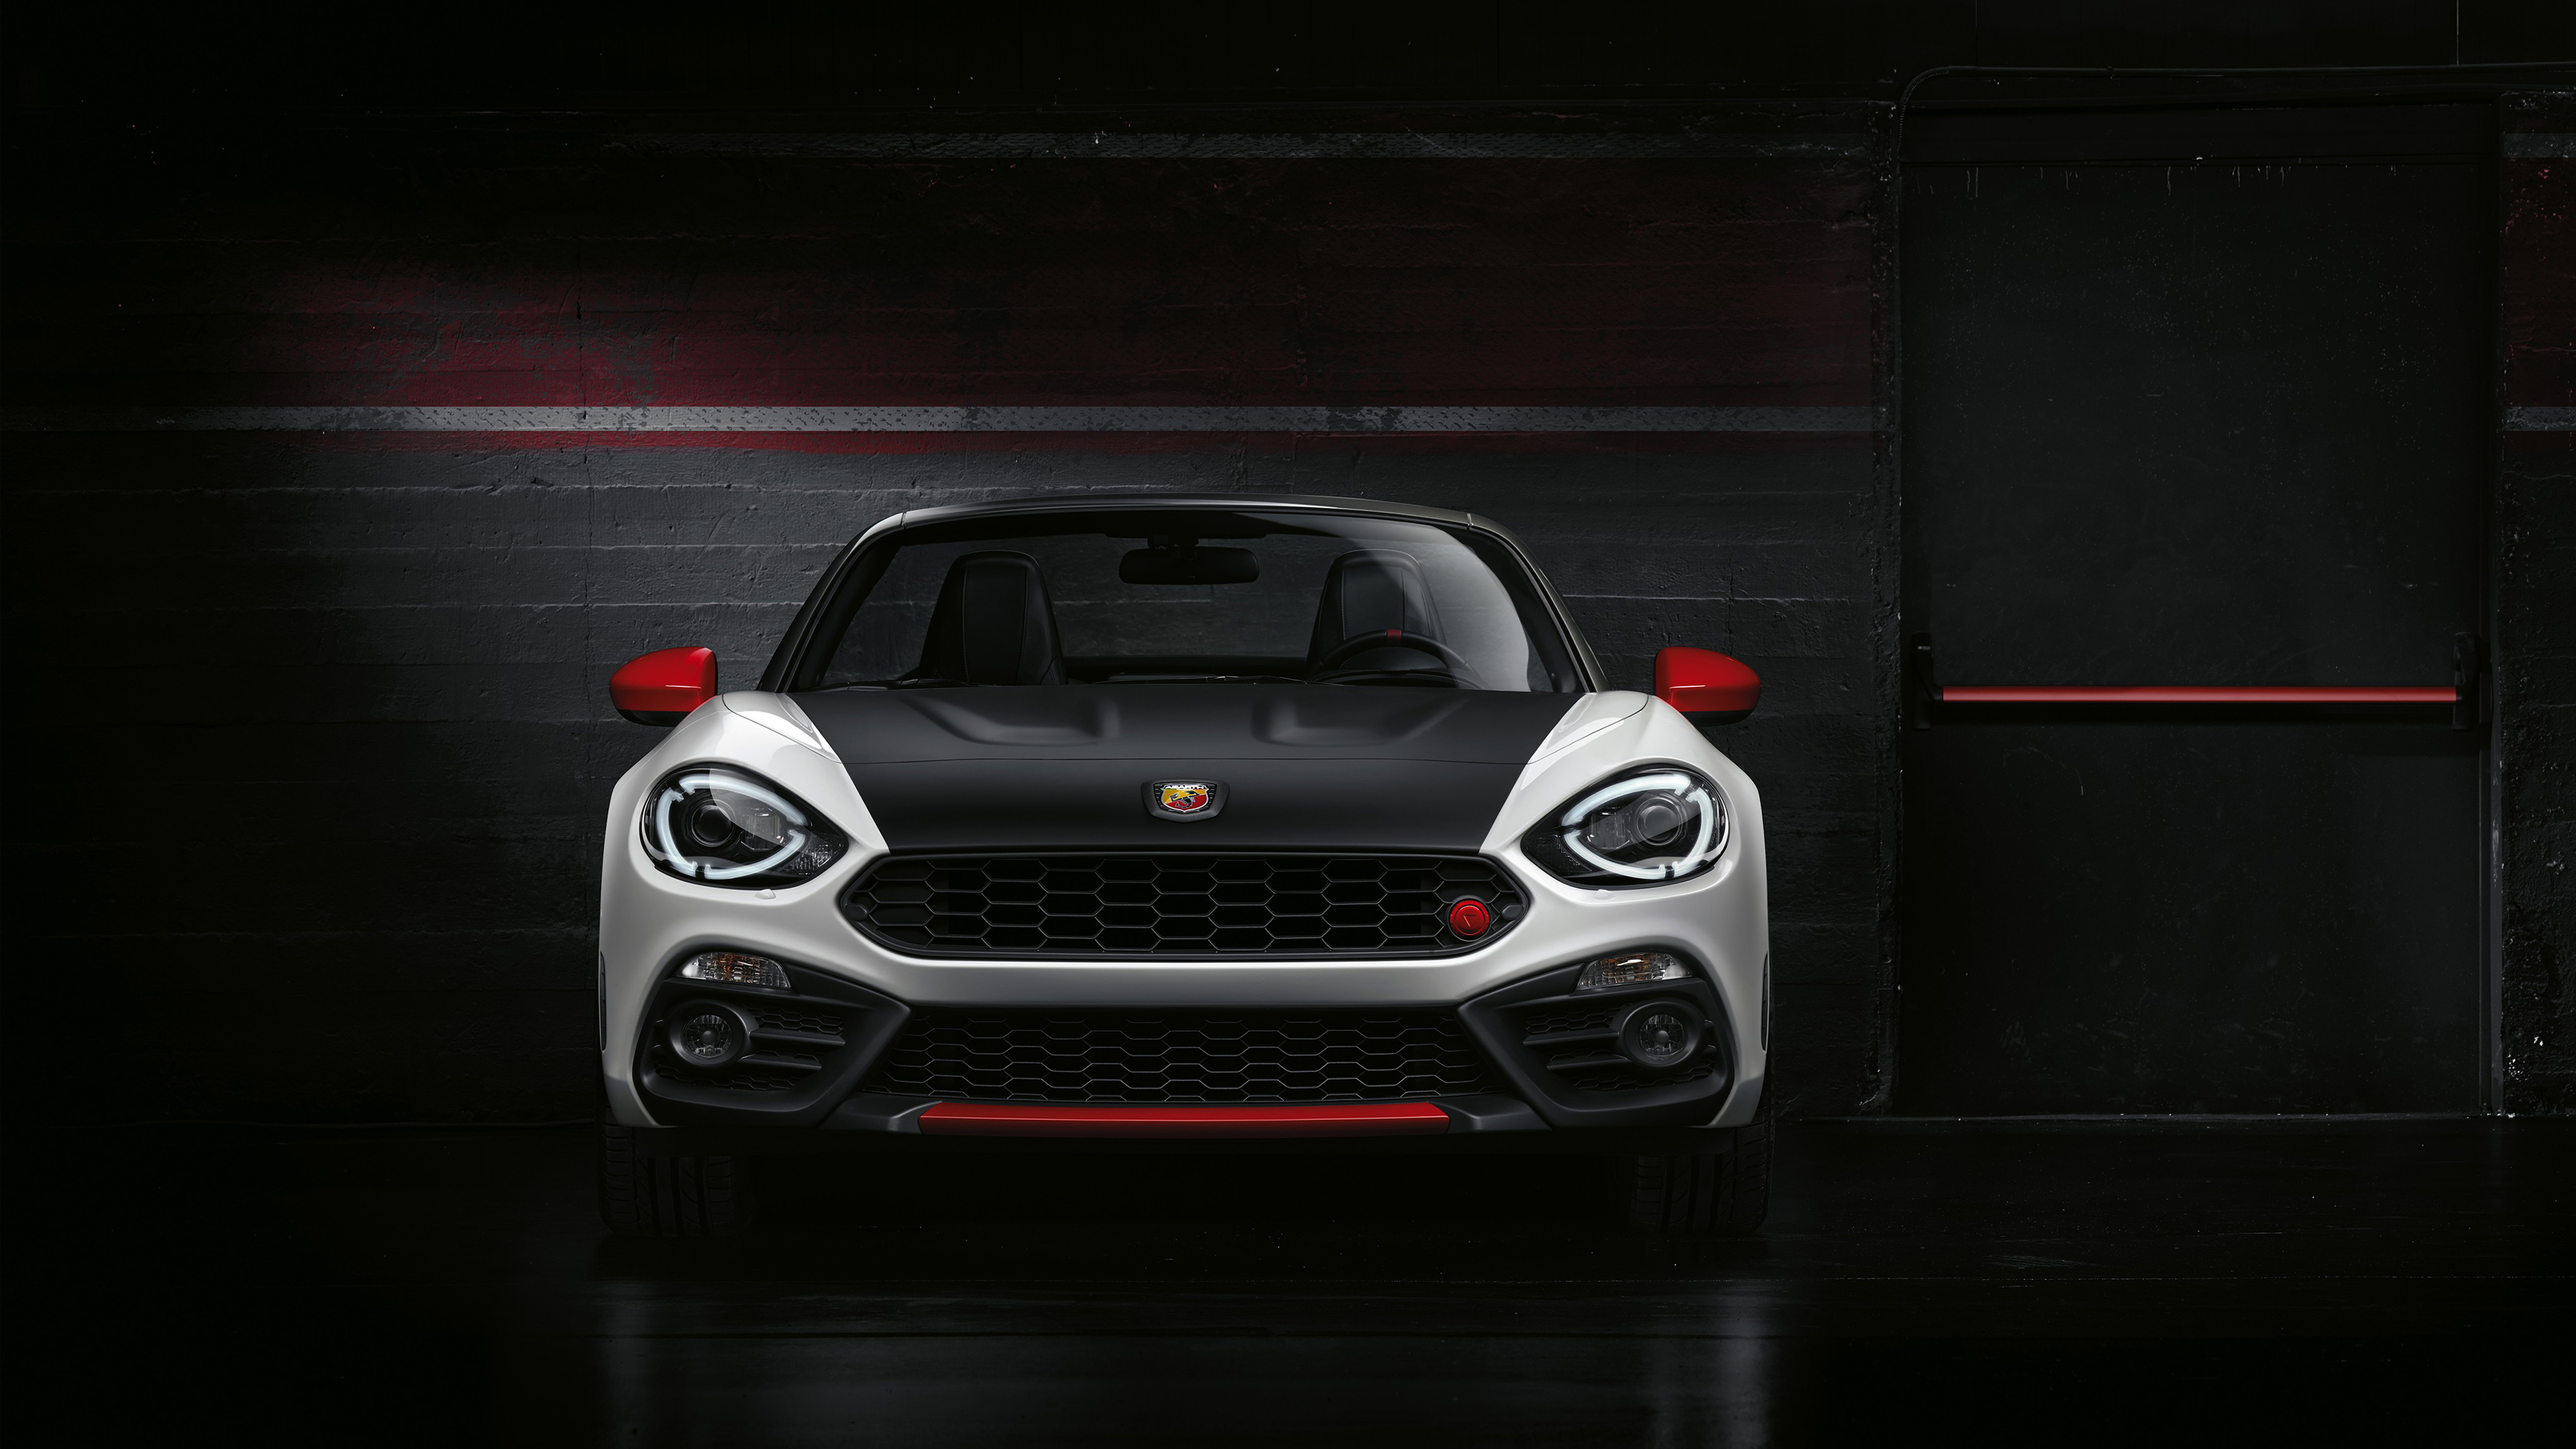 2017 fiat 124 spider abarth wallpaper hd car wallpapers id 6237. Black Bedroom Furniture Sets. Home Design Ideas